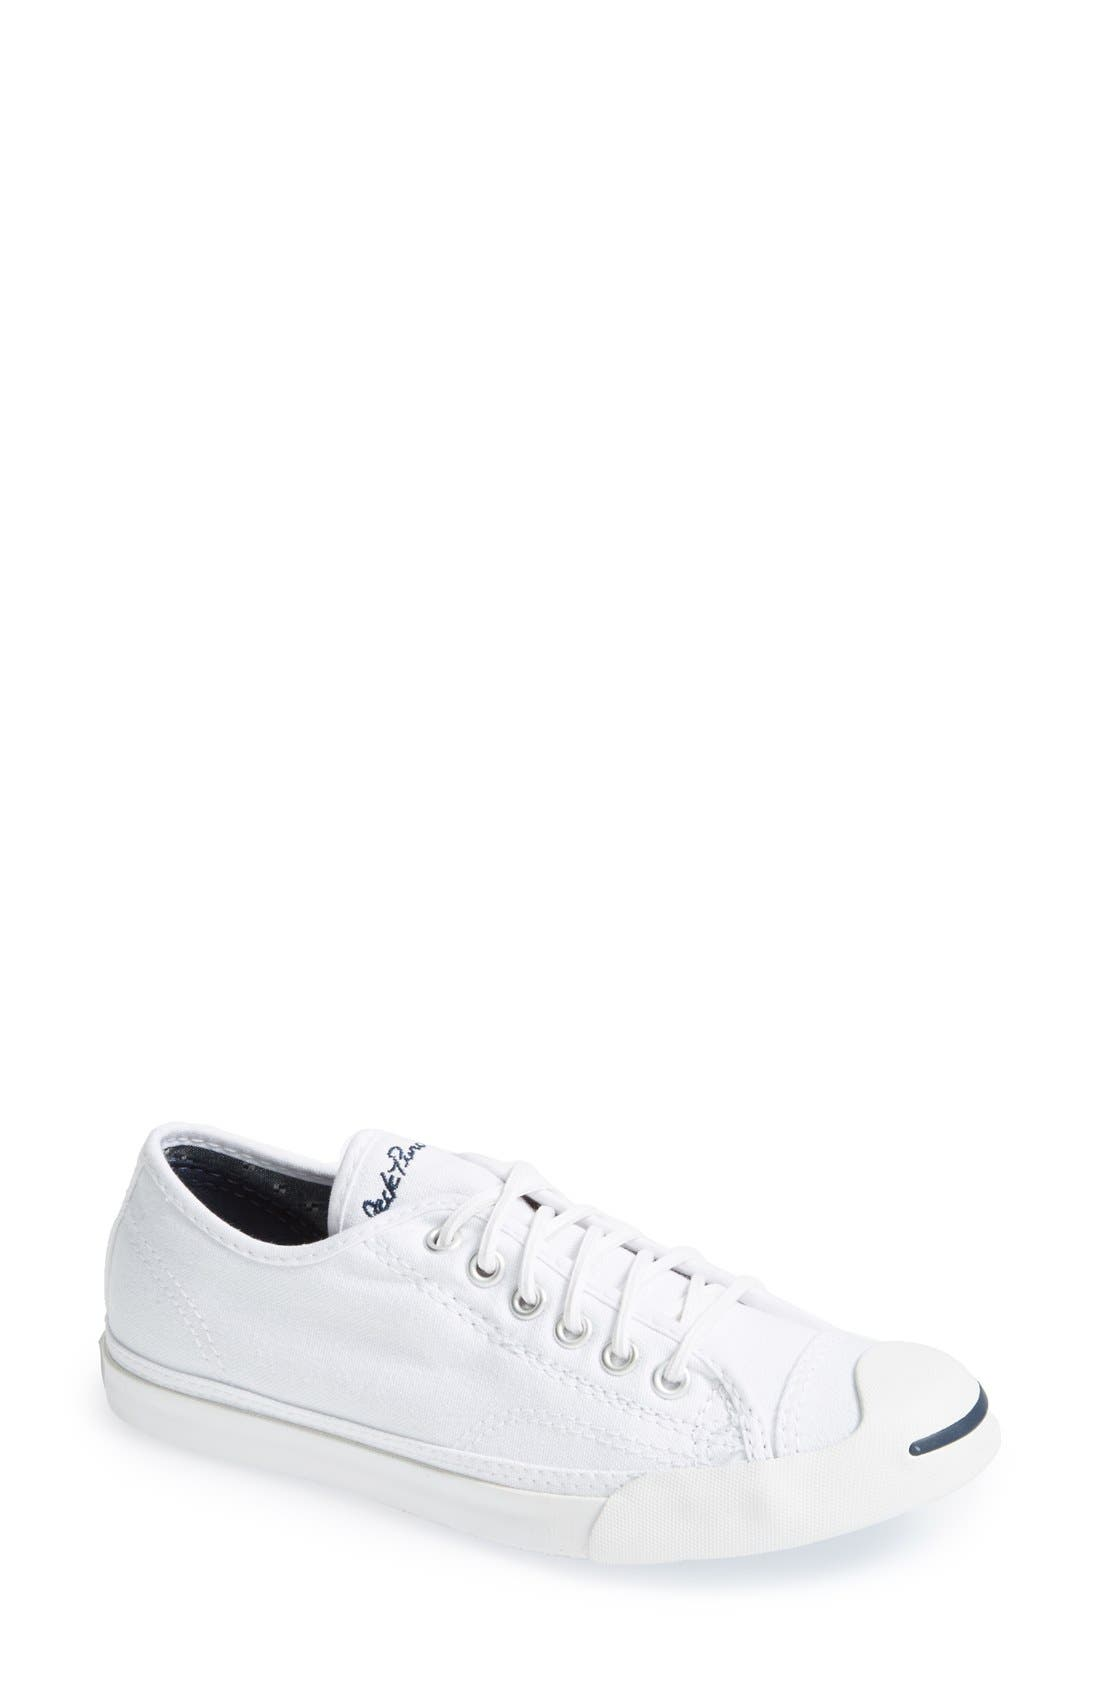 Jack Purcell Low Top Sneaker,                             Alternate thumbnail 5, color,                             OPTIC WHITE